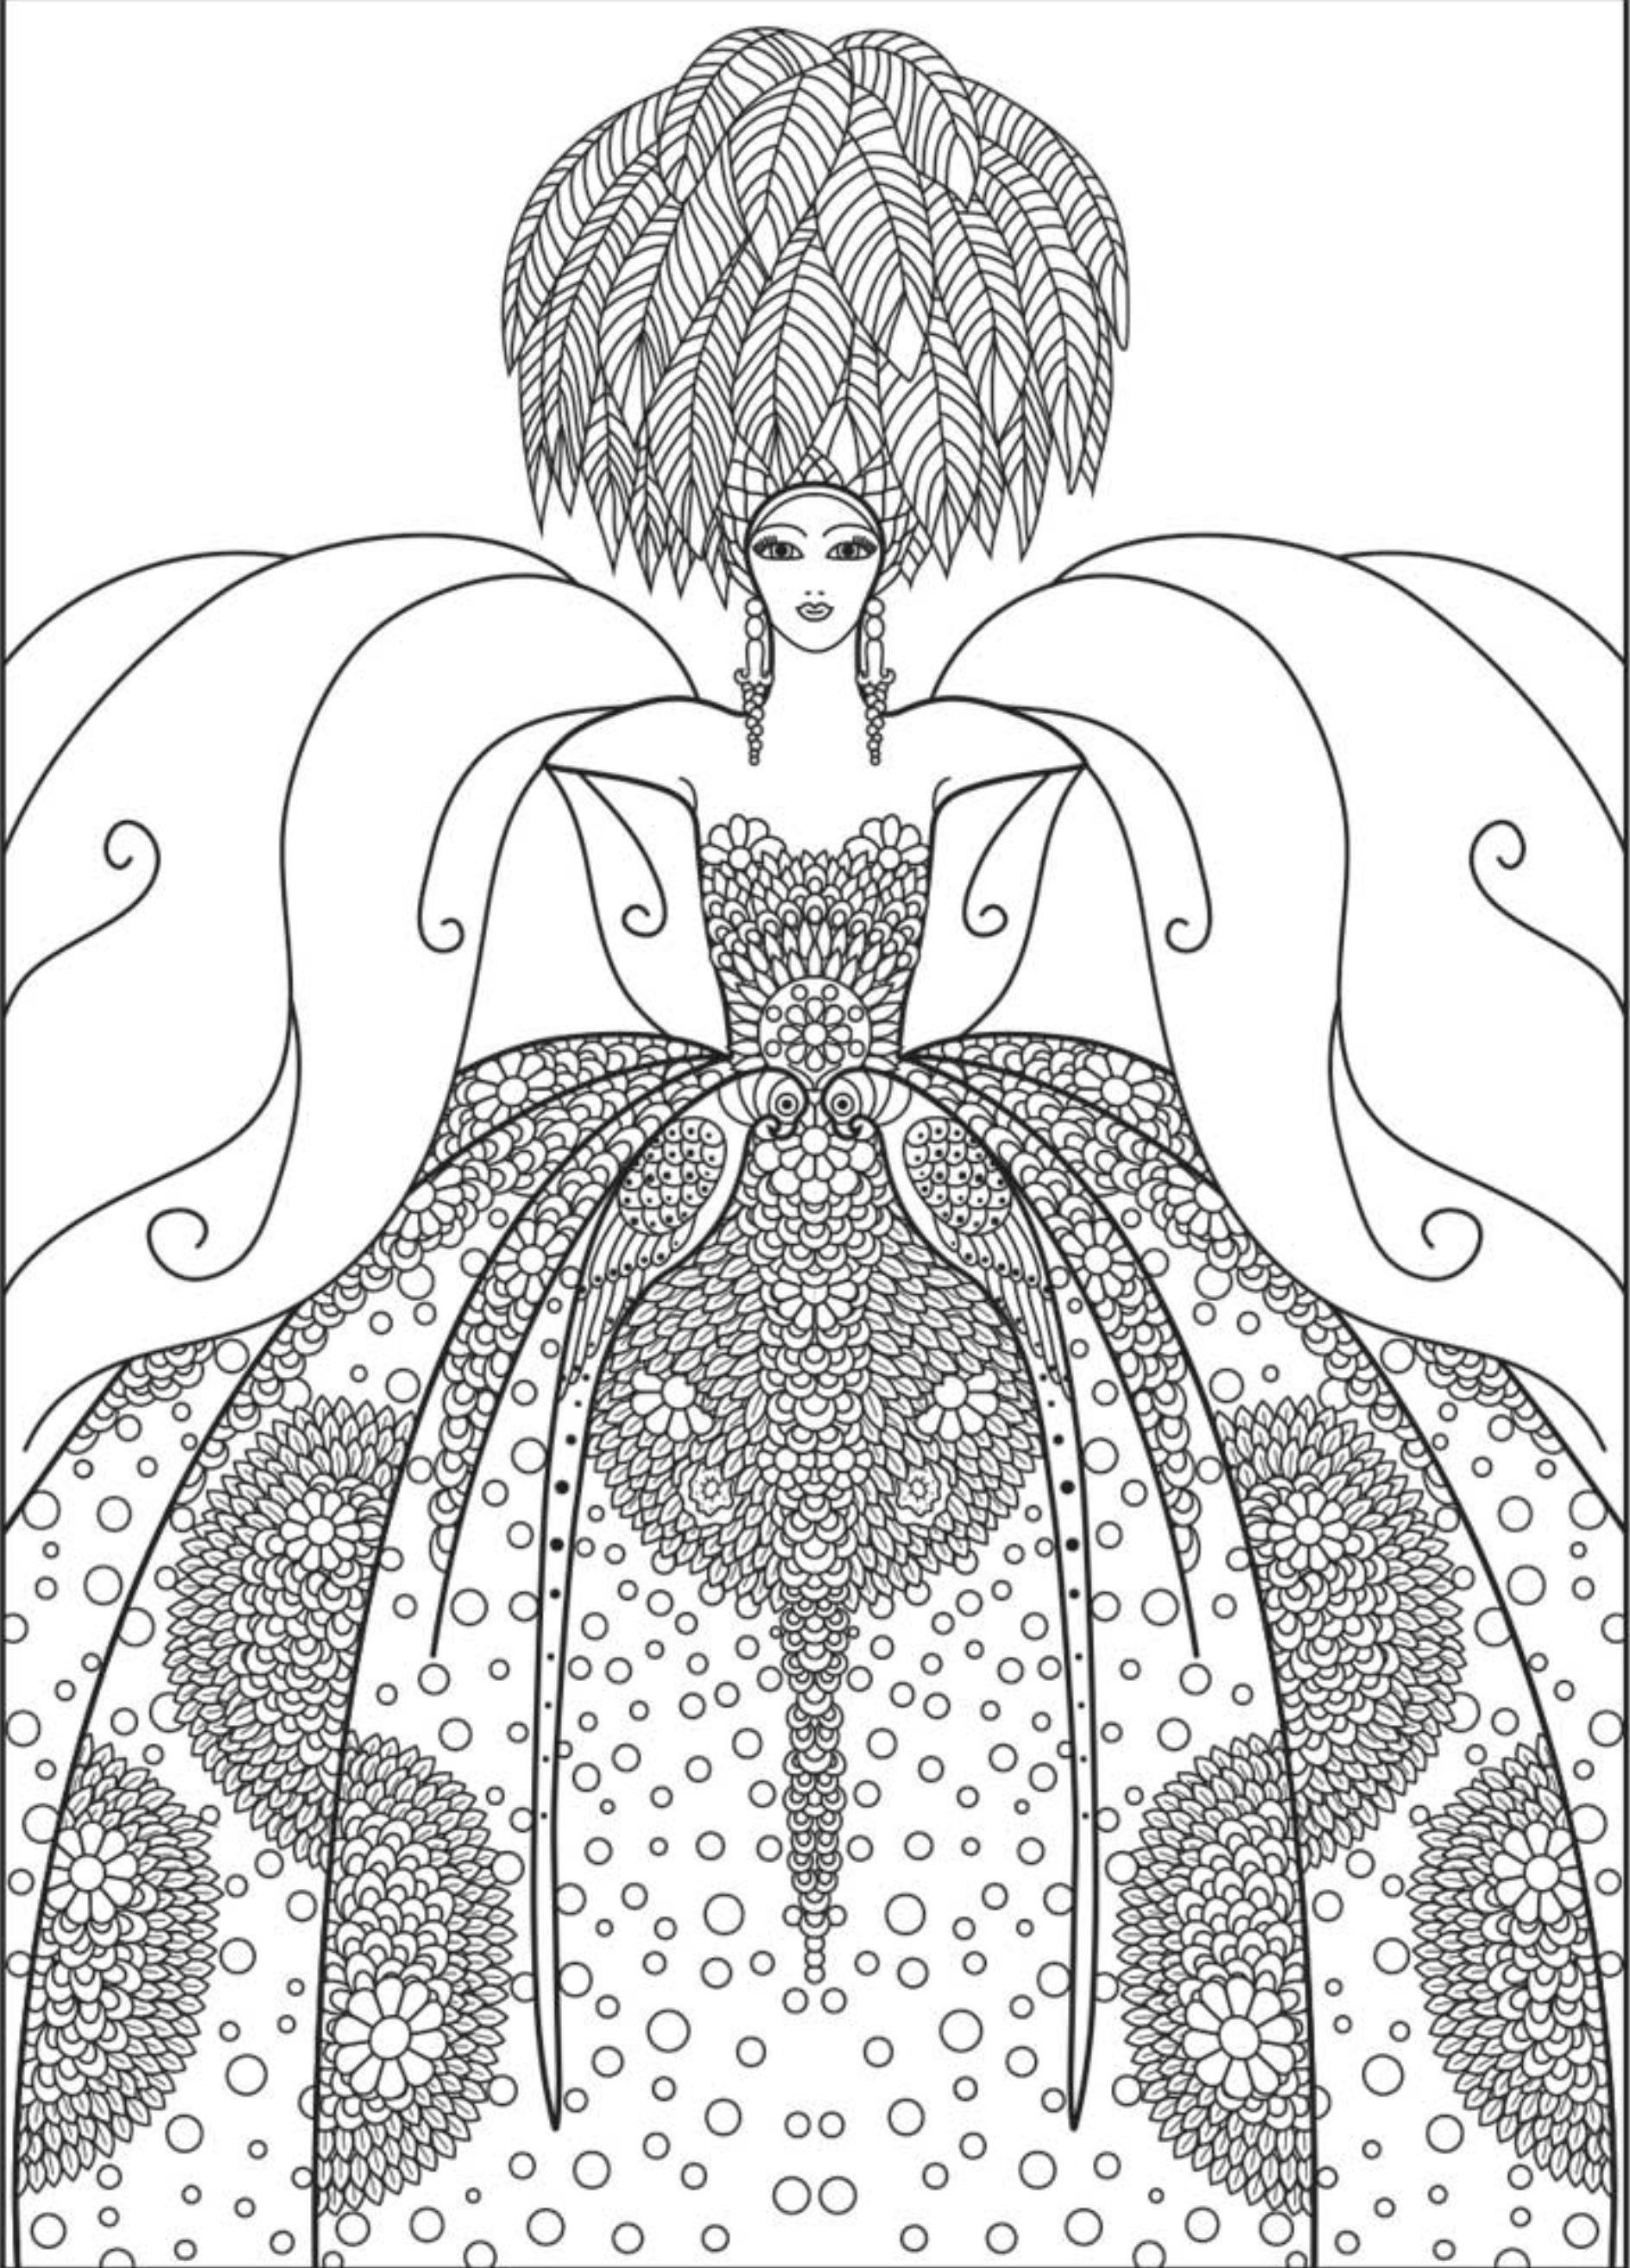 Fashion Coloring. Adult Coloring Pages: Fashion 1 | Adult ...